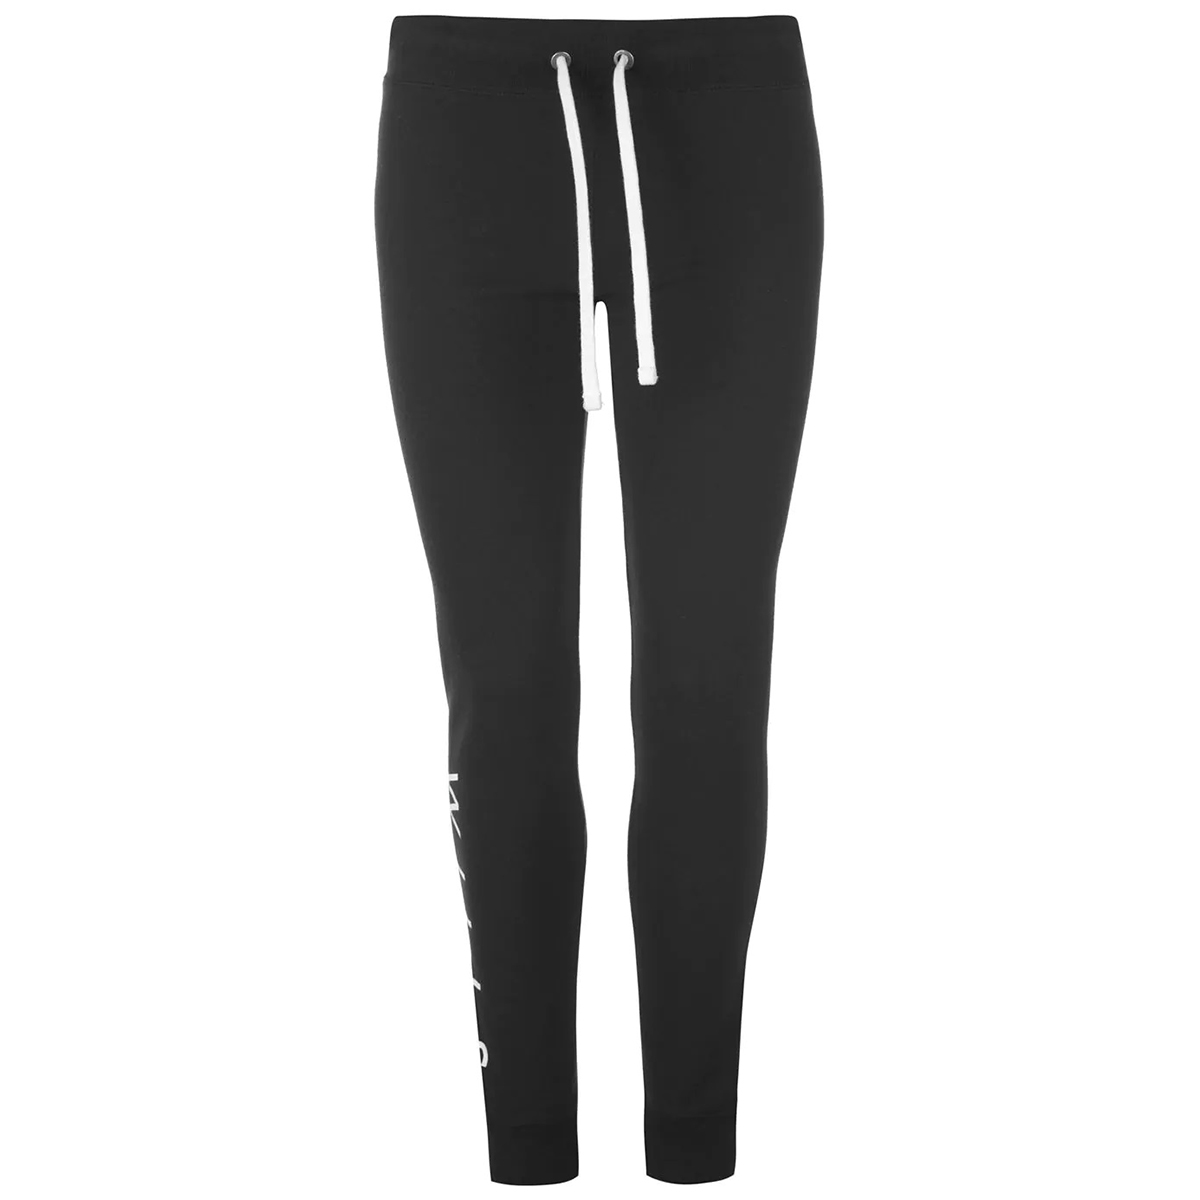 Jack Wills Women's Lingham Soft Skinny Joggers - Black, 8